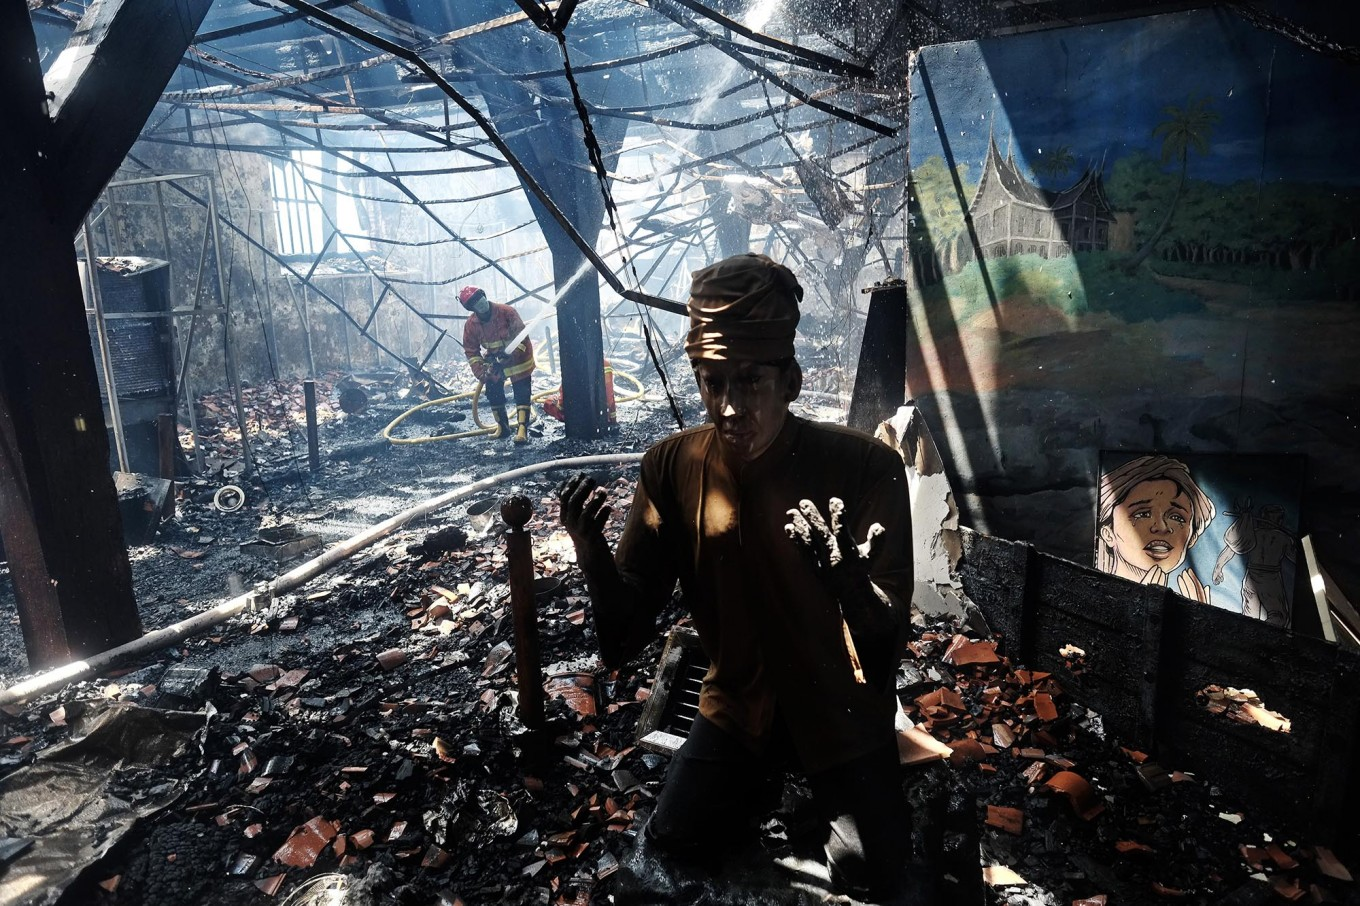 A fire fighter puts out fires among the debris inside the 17th century Dutch colonial building that houses the Maritime Museum in Penjaringan, North Jakarta on Tuesday January.16. Although the blaze destroyed the museum's collection, including dioramas and historic maps, no casualties were reported from the incidents. JP /Jerry Adiguna